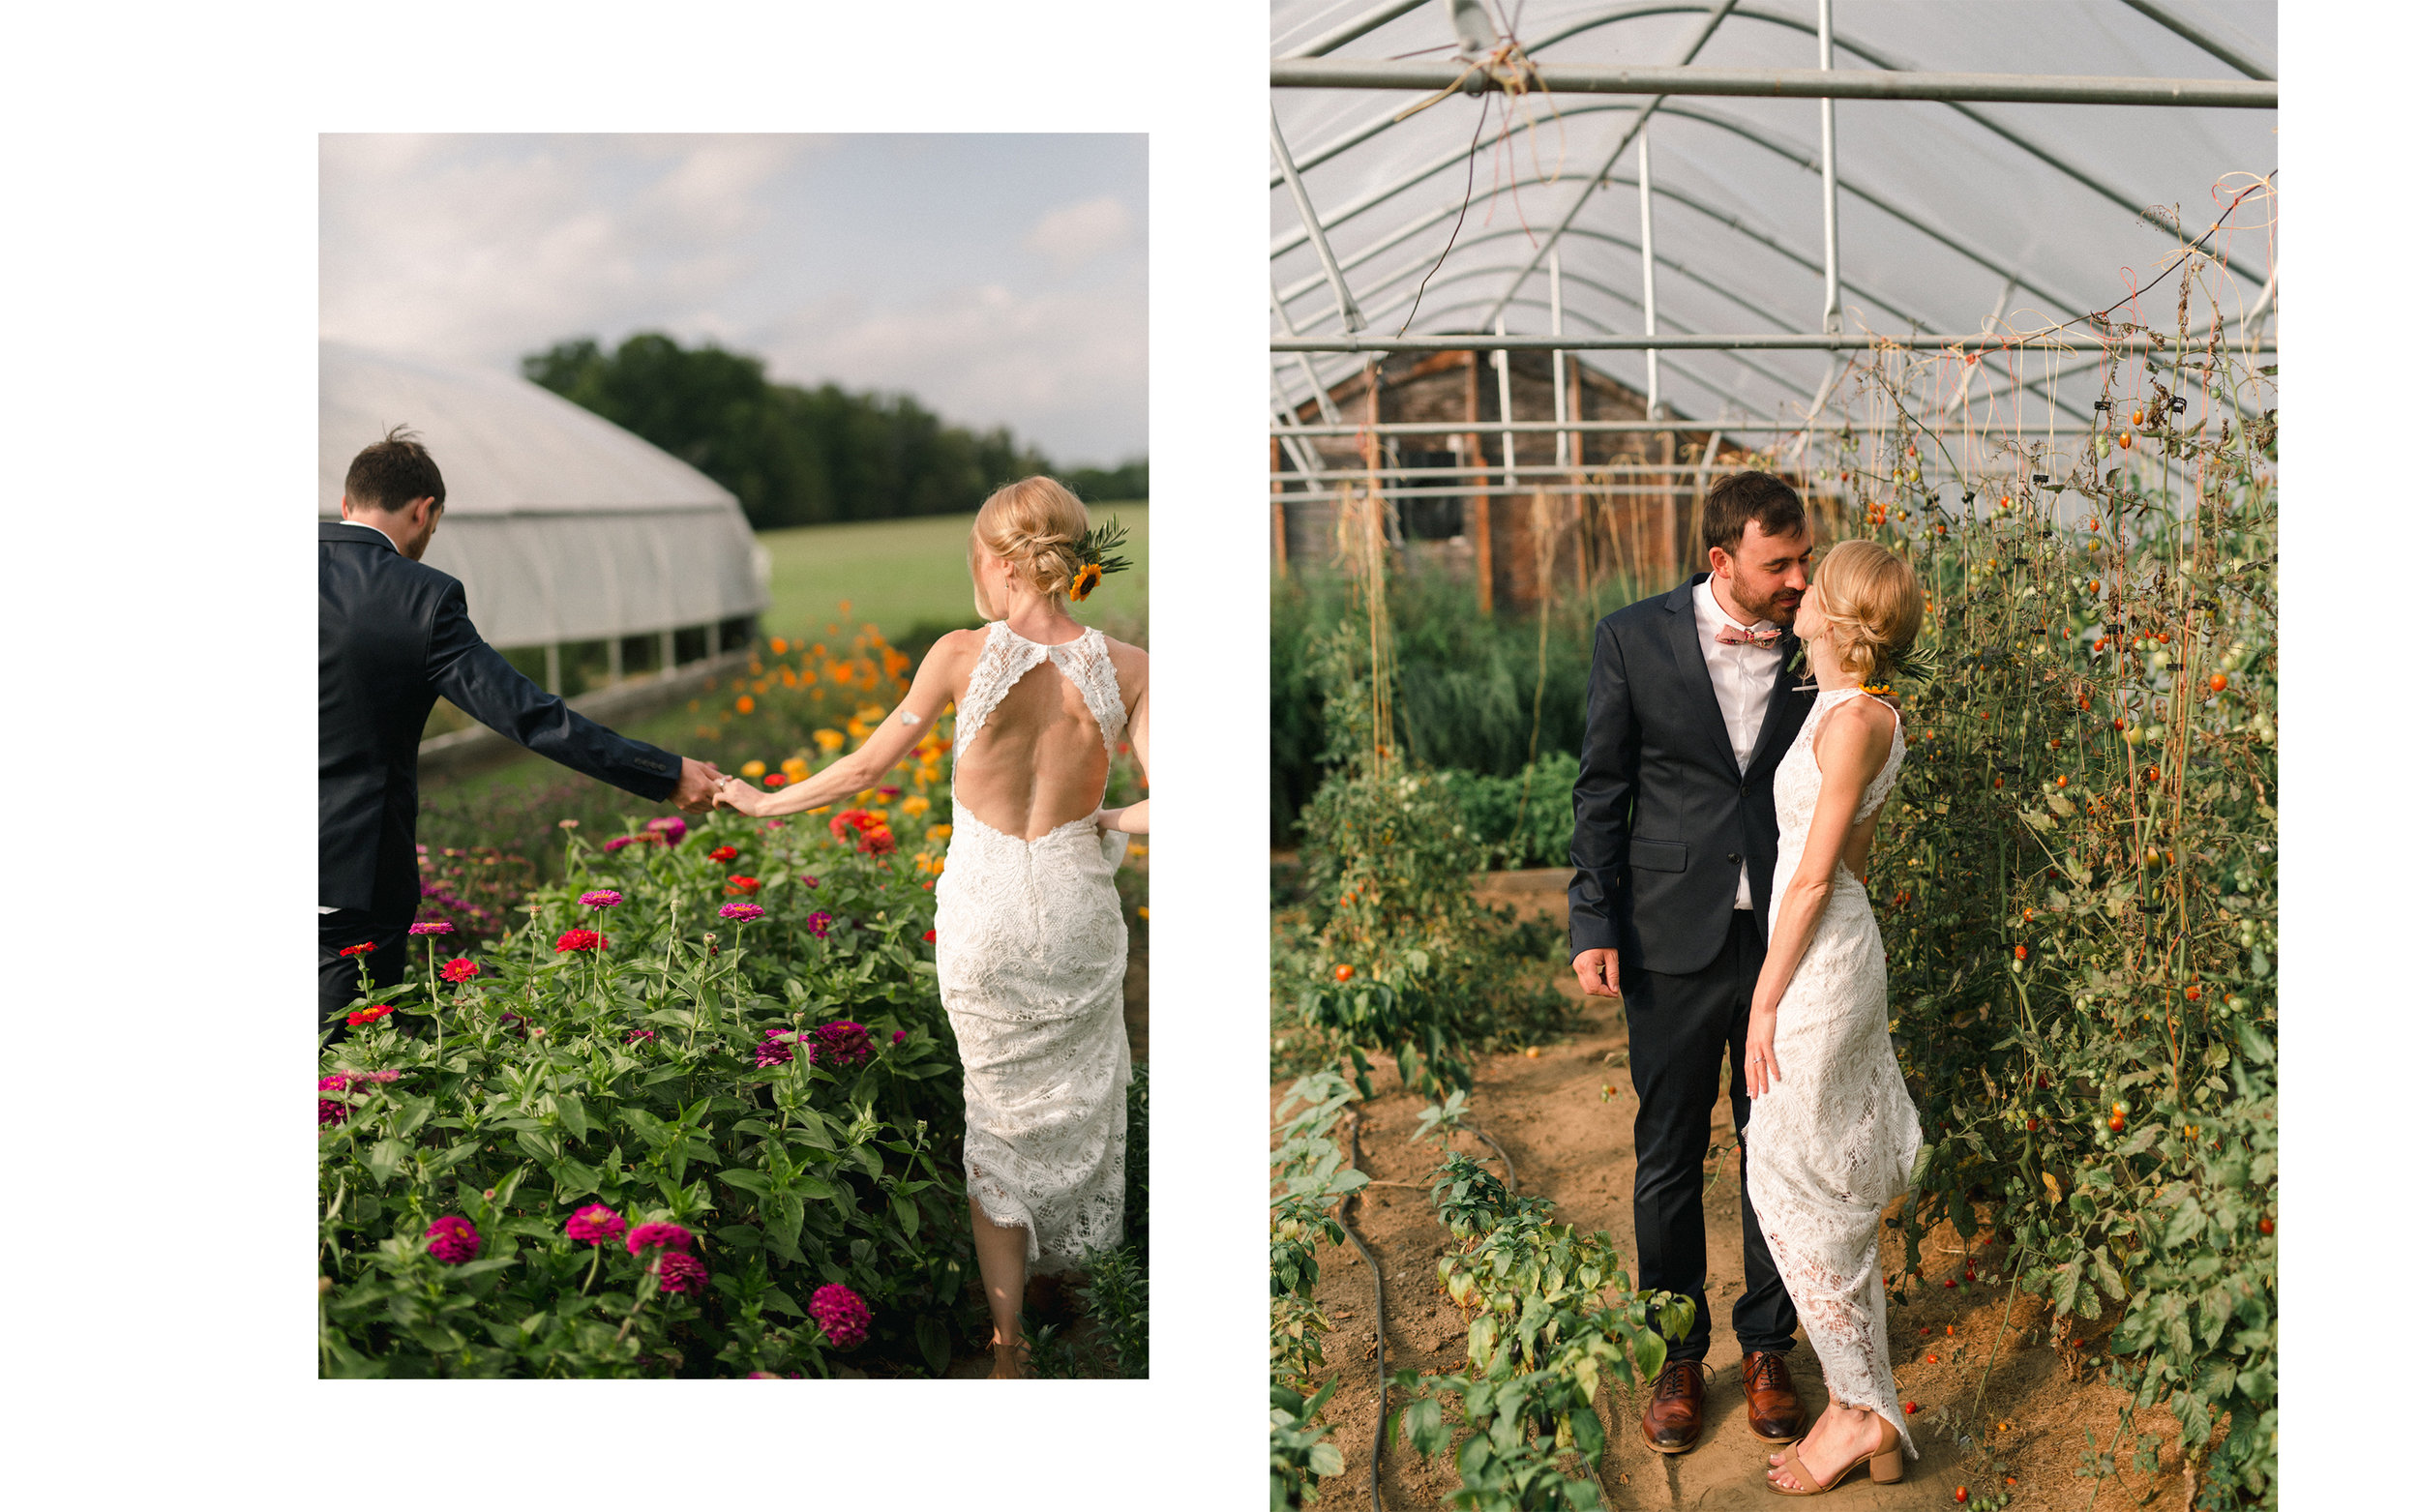 Stowe VT Farm Wedding Fine Art Wedding Photographer_Meg Haley Photographs_028.jpg